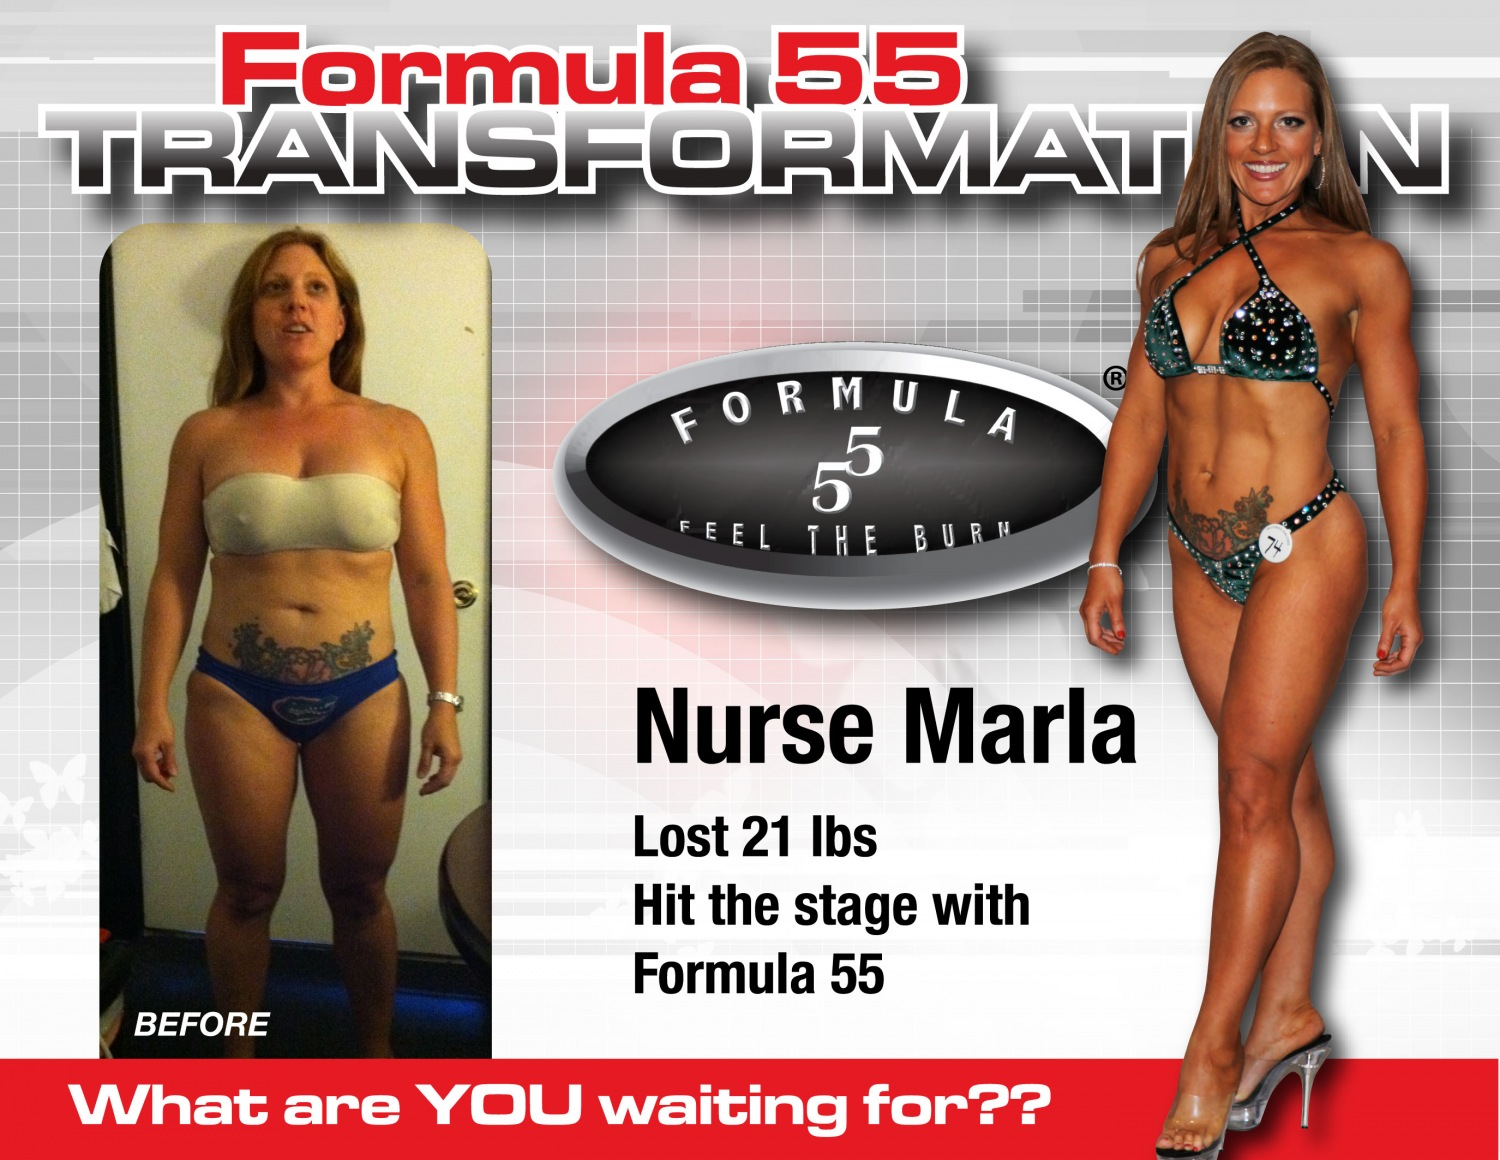 form-55-Transformation-Marla-front.jpg